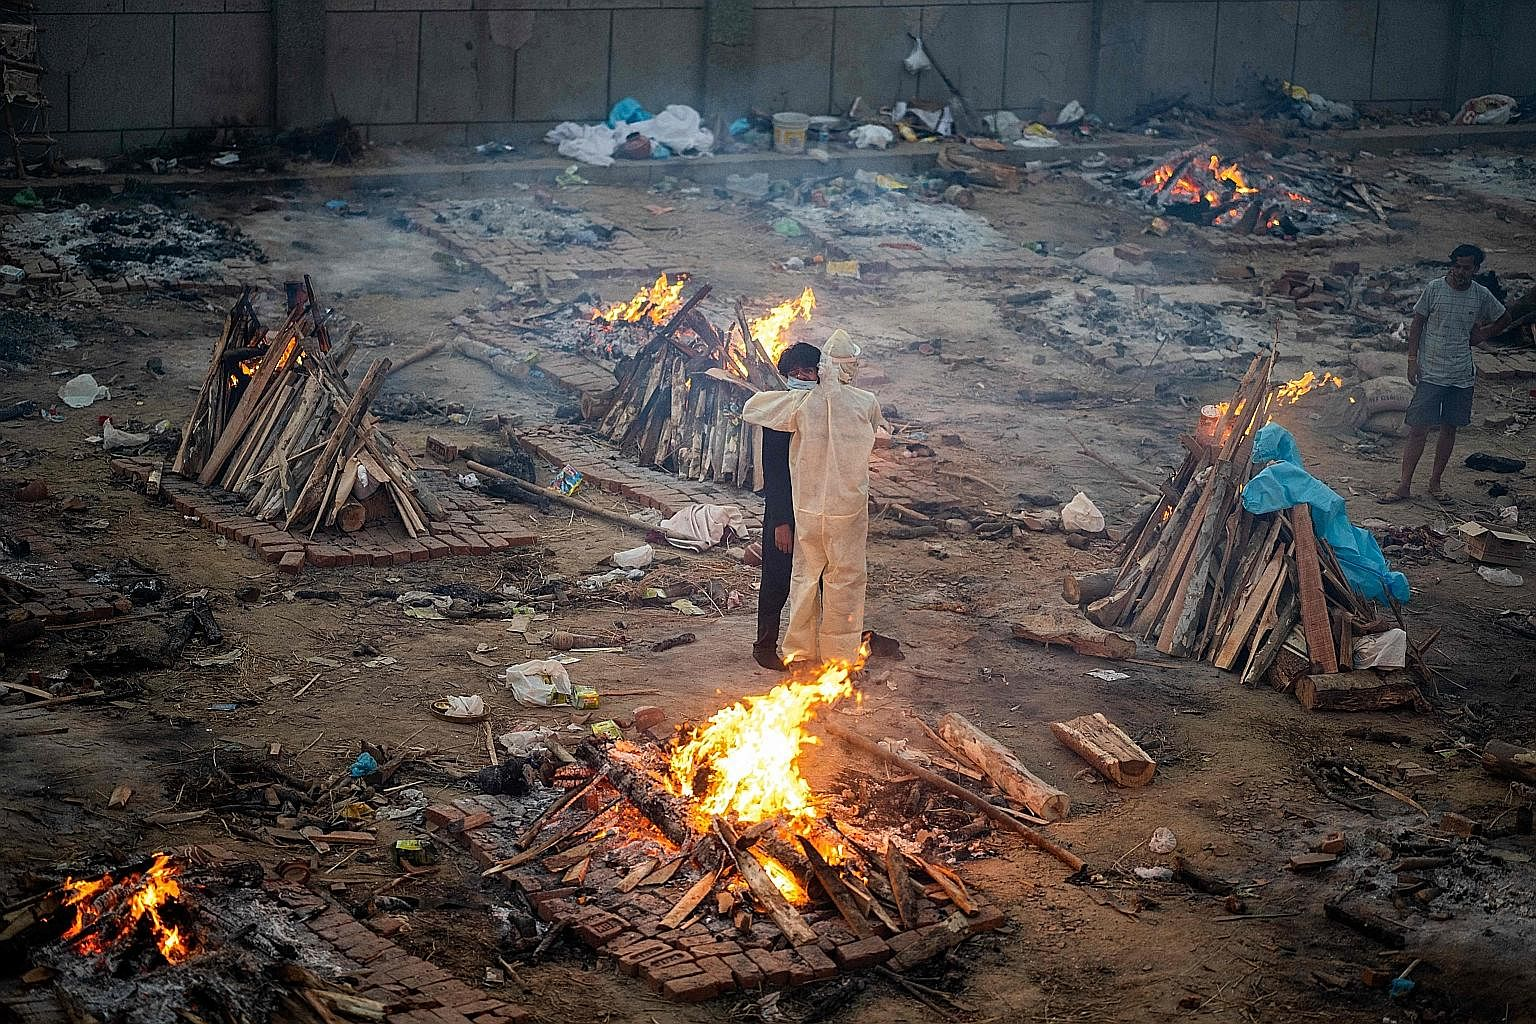 Funeral pyres for those who died from Covid-19 at a cremation ground in New Delhi on Monday. Delhi has been hit by the most severe shortage of oxygen in India.